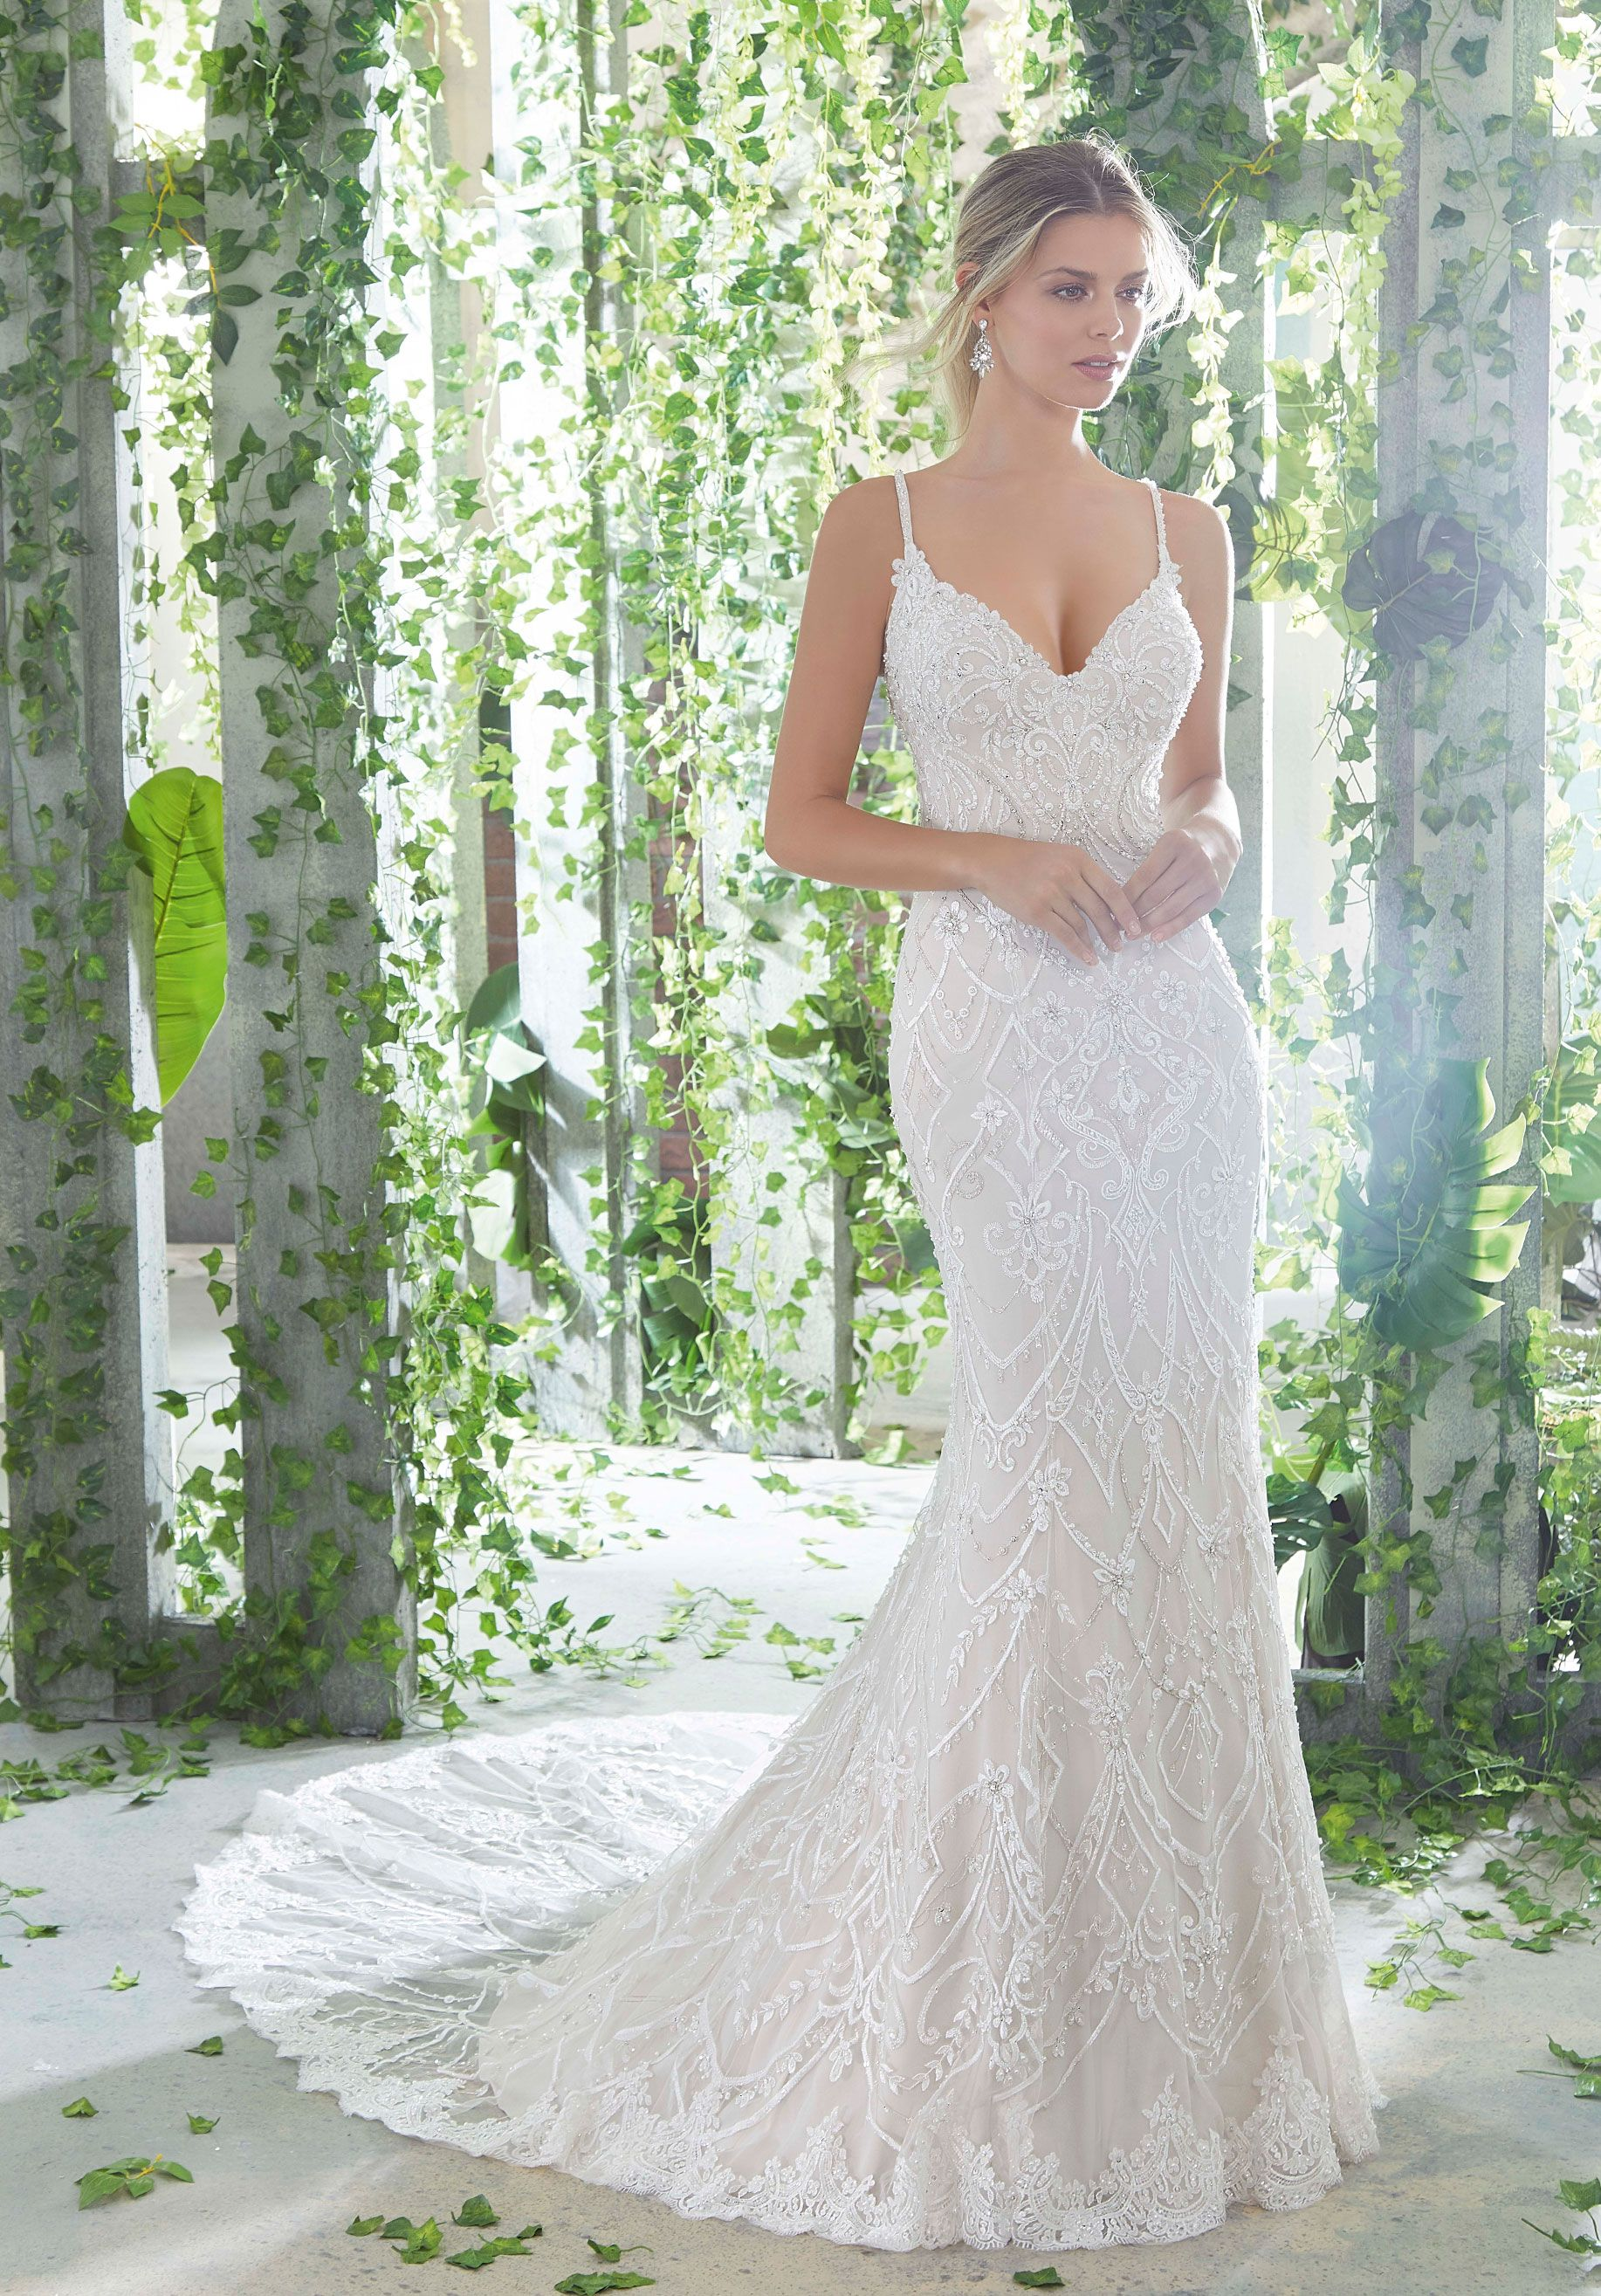 Morilee Madeline Gardner Phaedra Style 1724 Allover Crystal Beaded Embroidery And Straps Sheath Wedding Dress Lace Wedding Dresses Beaded Wedding Dresses [ 2630 x 1834 Pixel ]